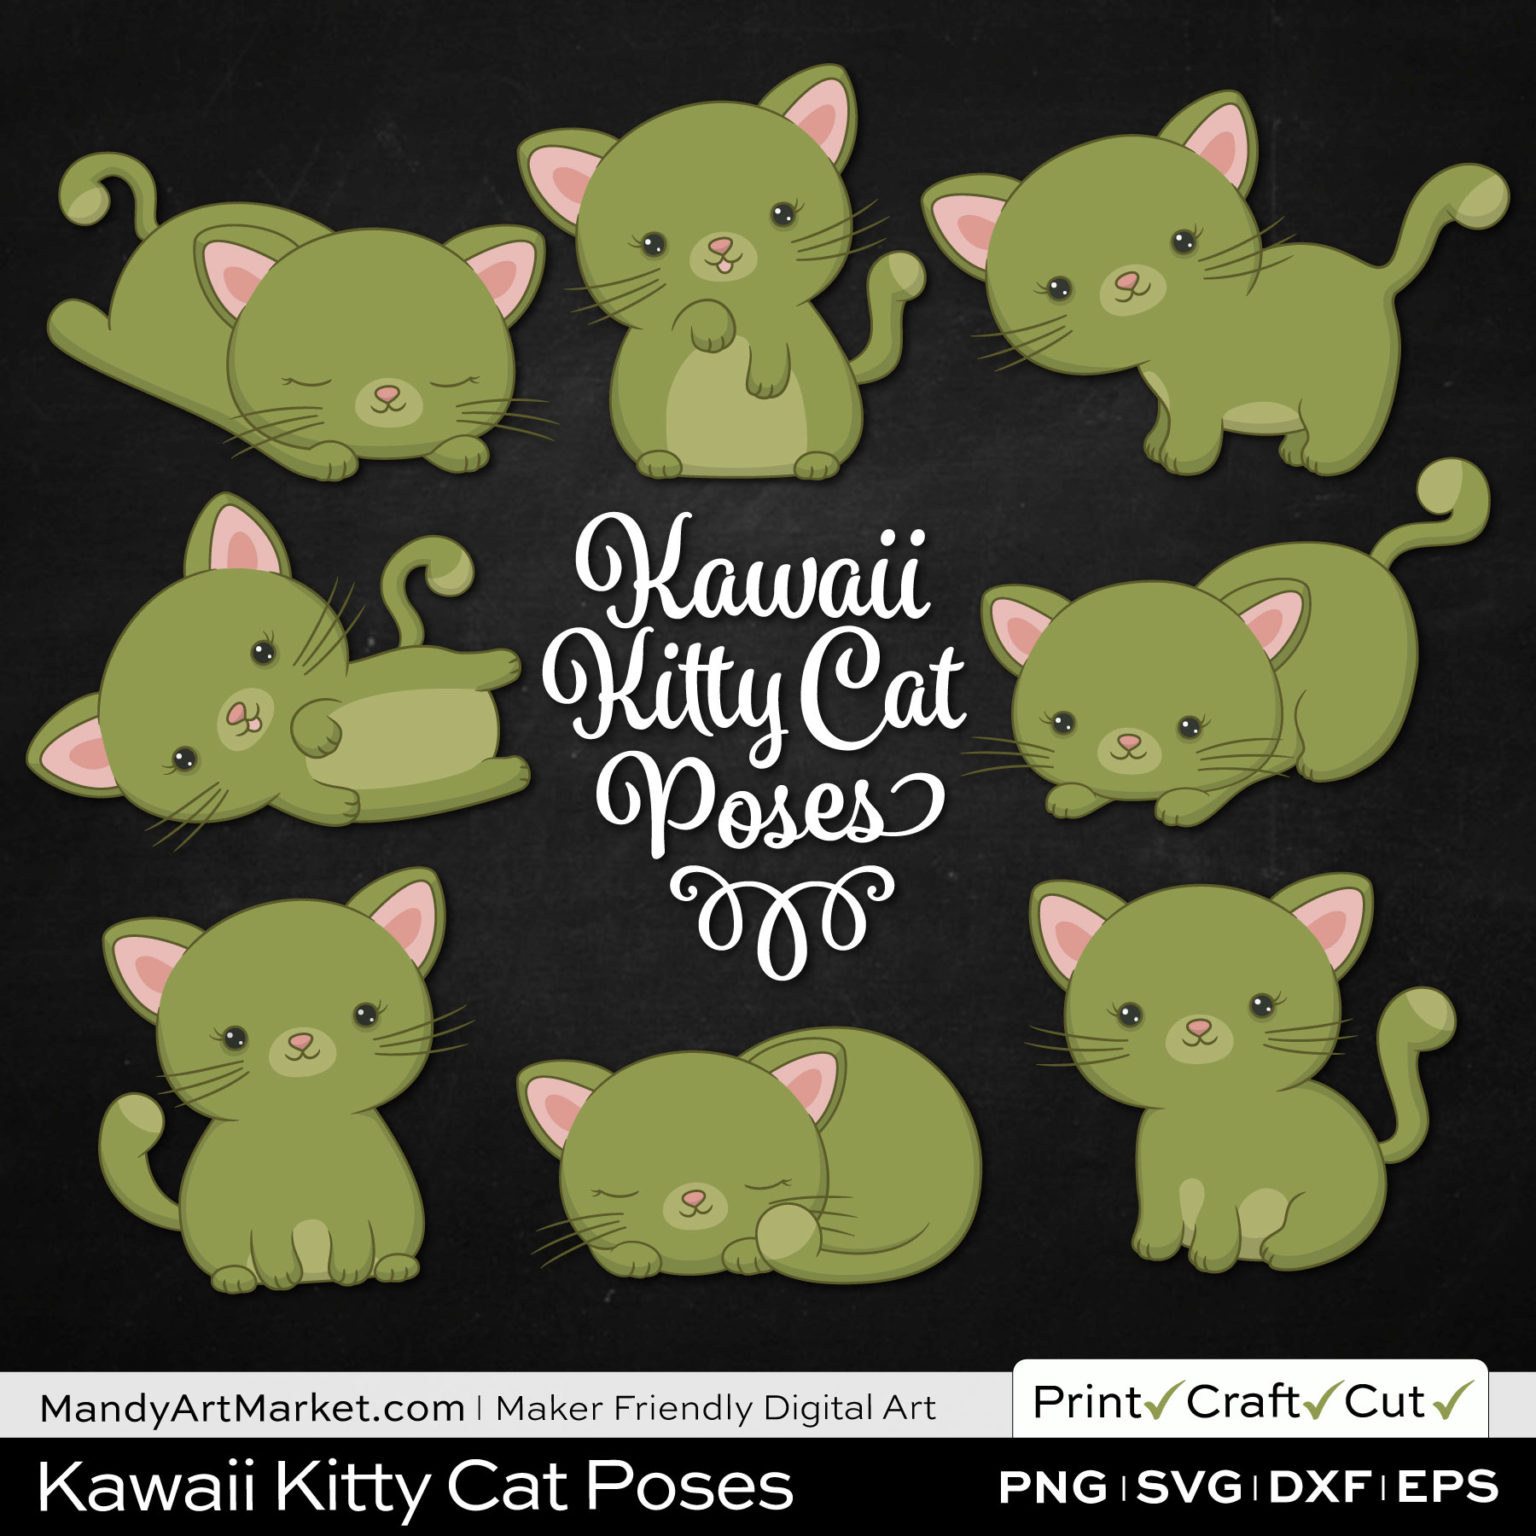 Olive Green Kawaii Kitty Cat Poses Clipart on Black Background